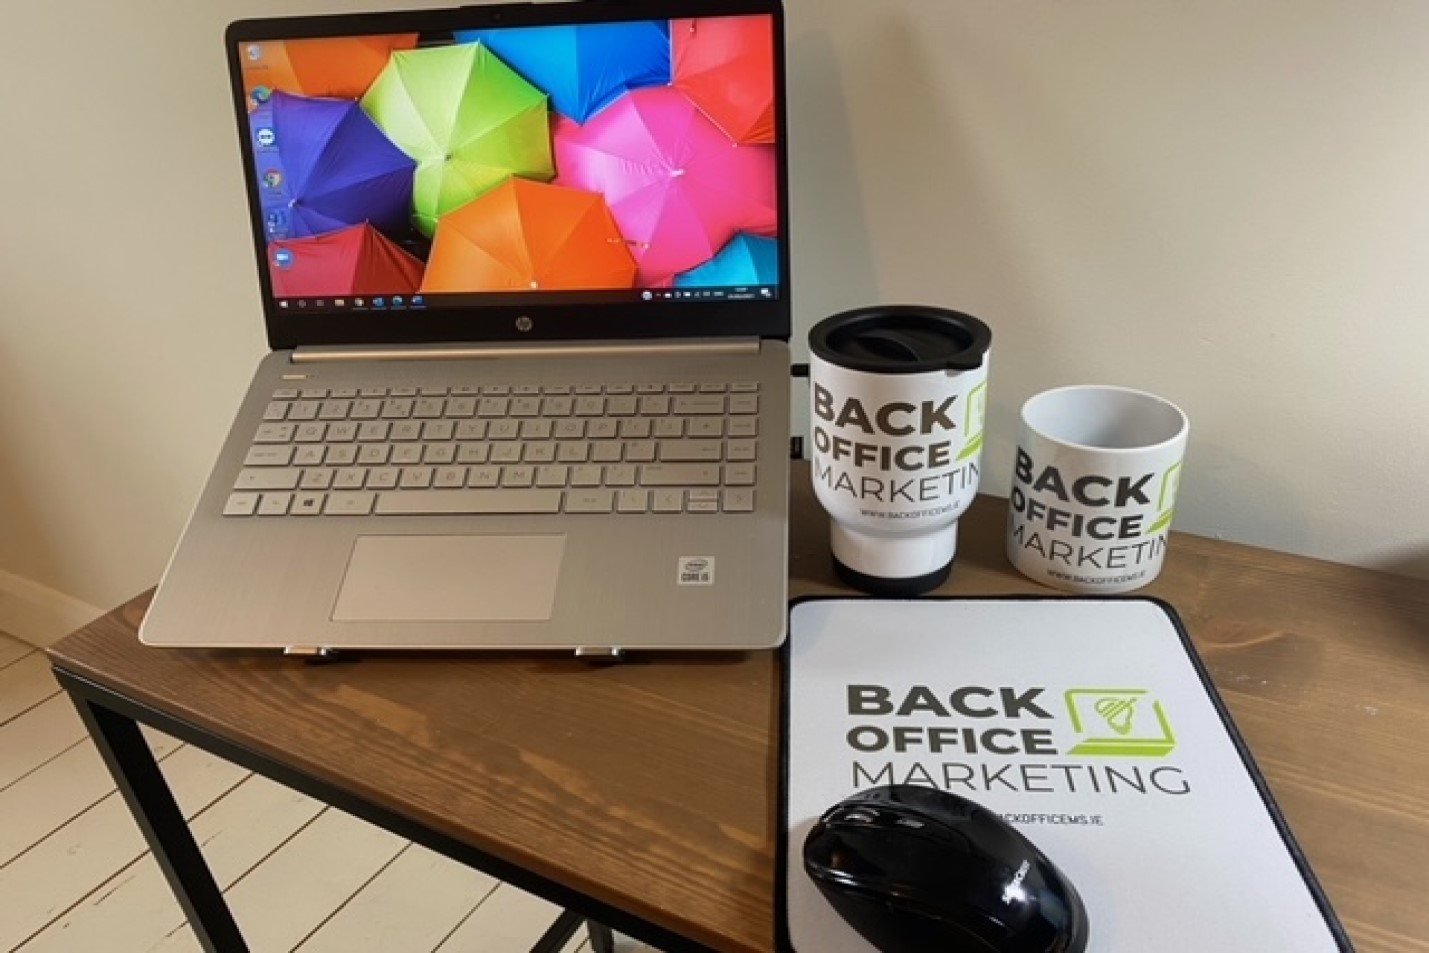 Back office Marketing